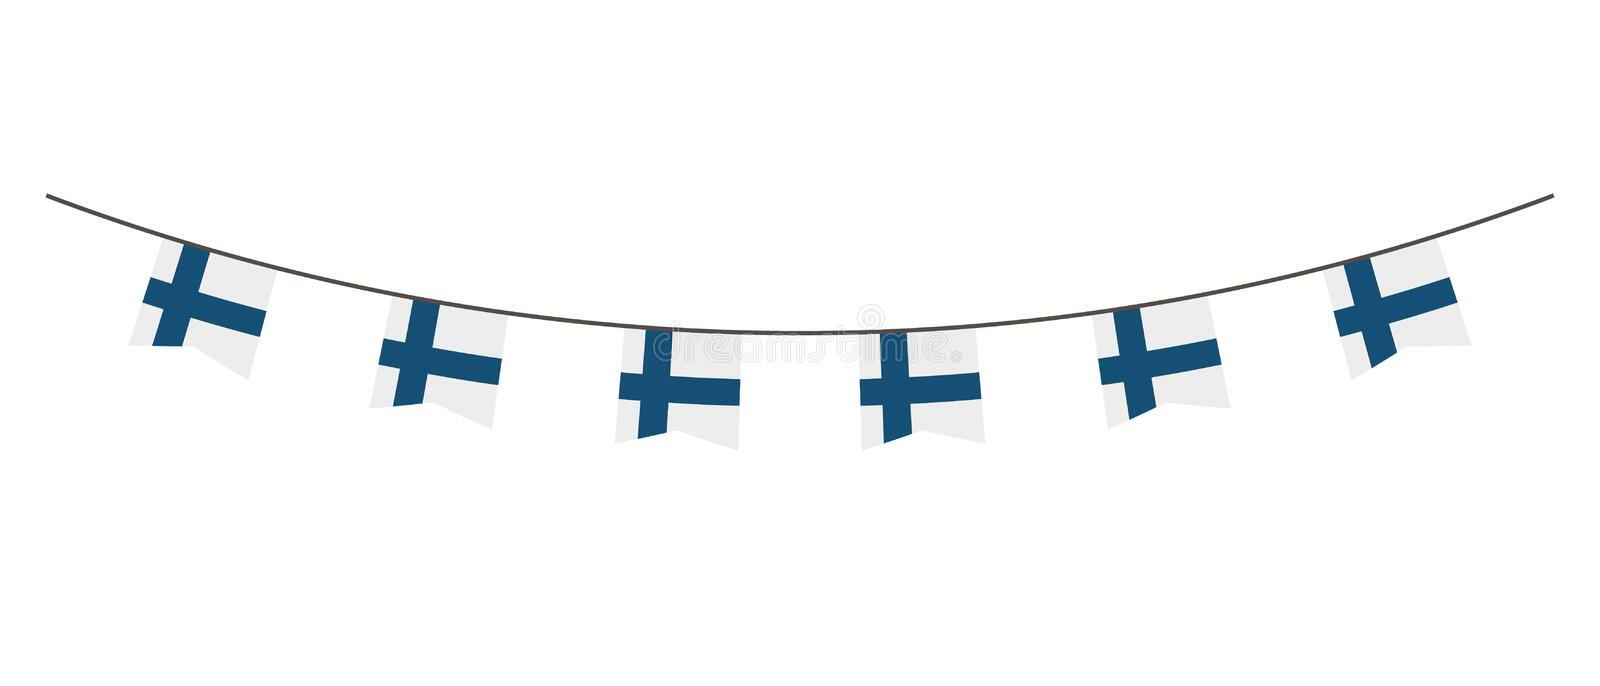 Bunting decoration in colors of Finland flag. Garland, pennants on a rope for party, carnival, festival, celebration. For National. Day of Finland on August 18 royalty free illustration